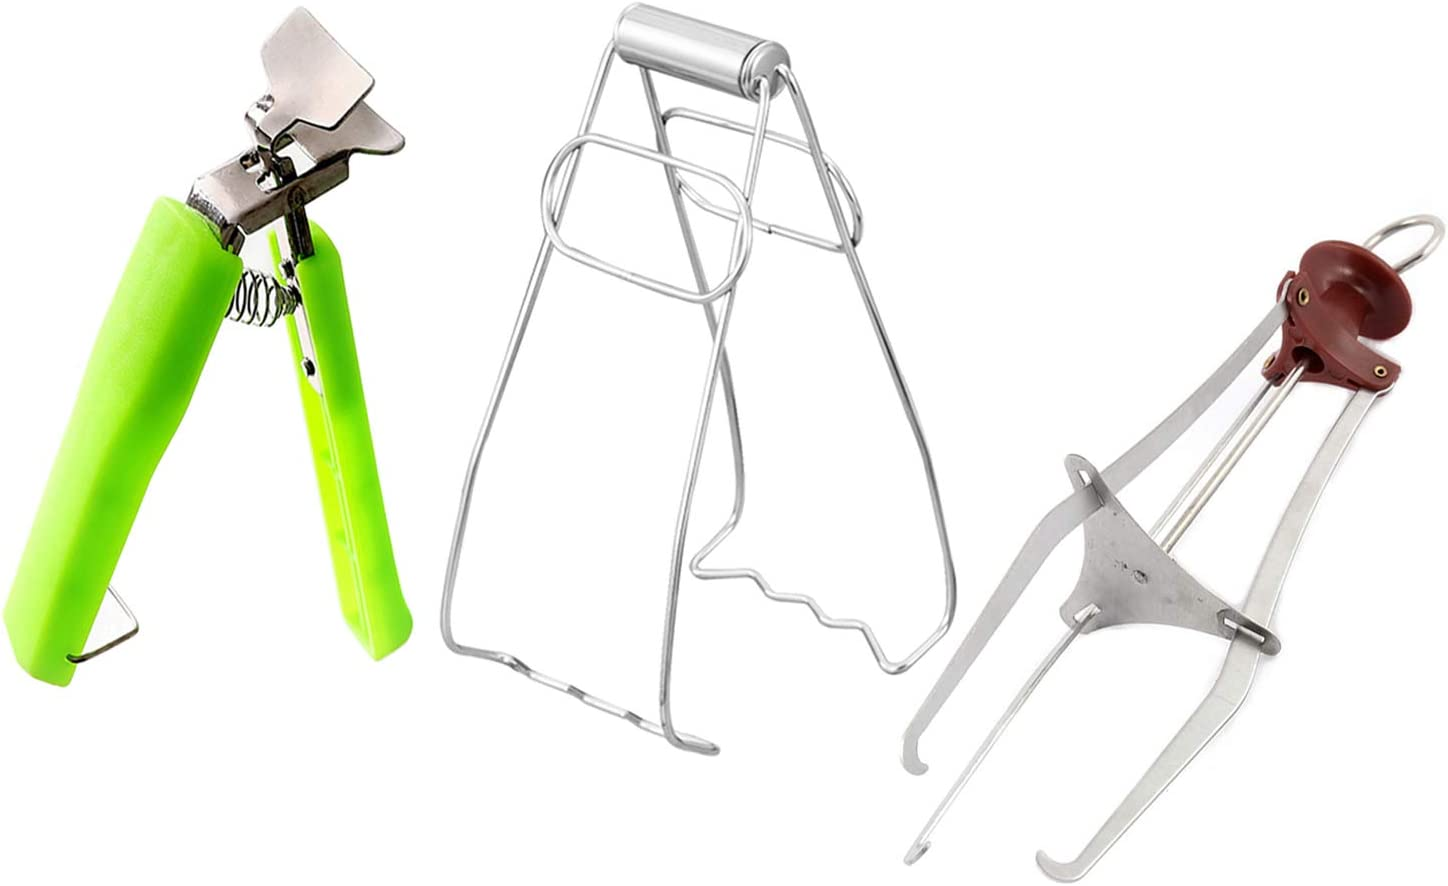 3 Pack Dish Bowl Clip Gripper, Kitchen Stainless Steel Folding Hot Dish Plate Holder, Lifter Gripper, and Three Feet Clip Retrieve Tong from Microwave Oven (3 Pack)